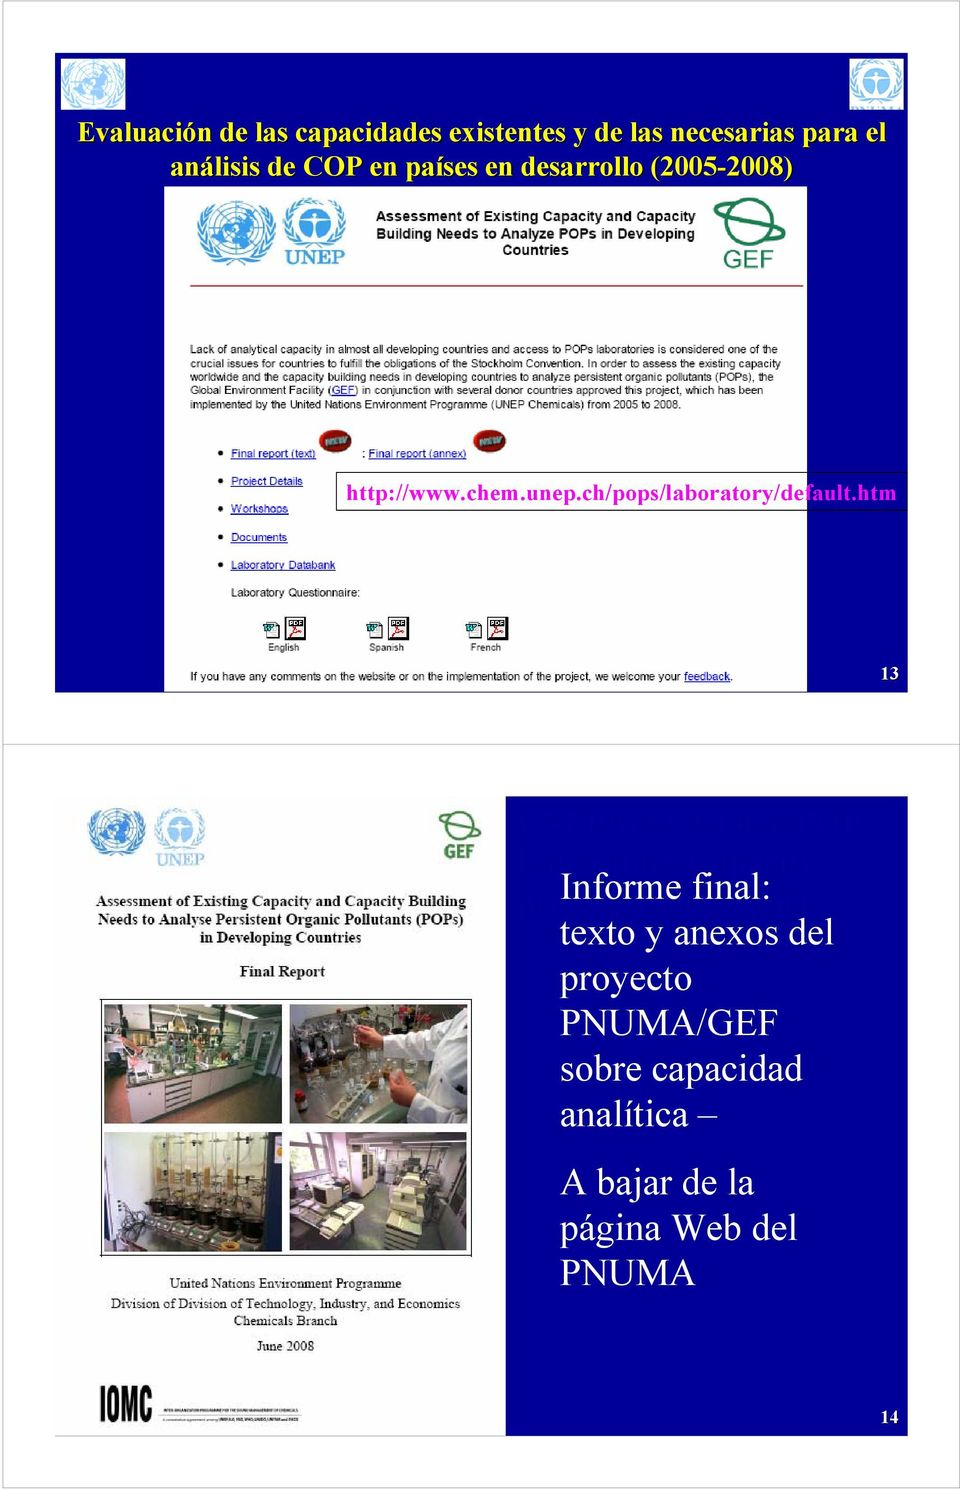 htm 13 UNEP/GEF Global POPs Laboratory Capacity project: Informe Final final: report texto